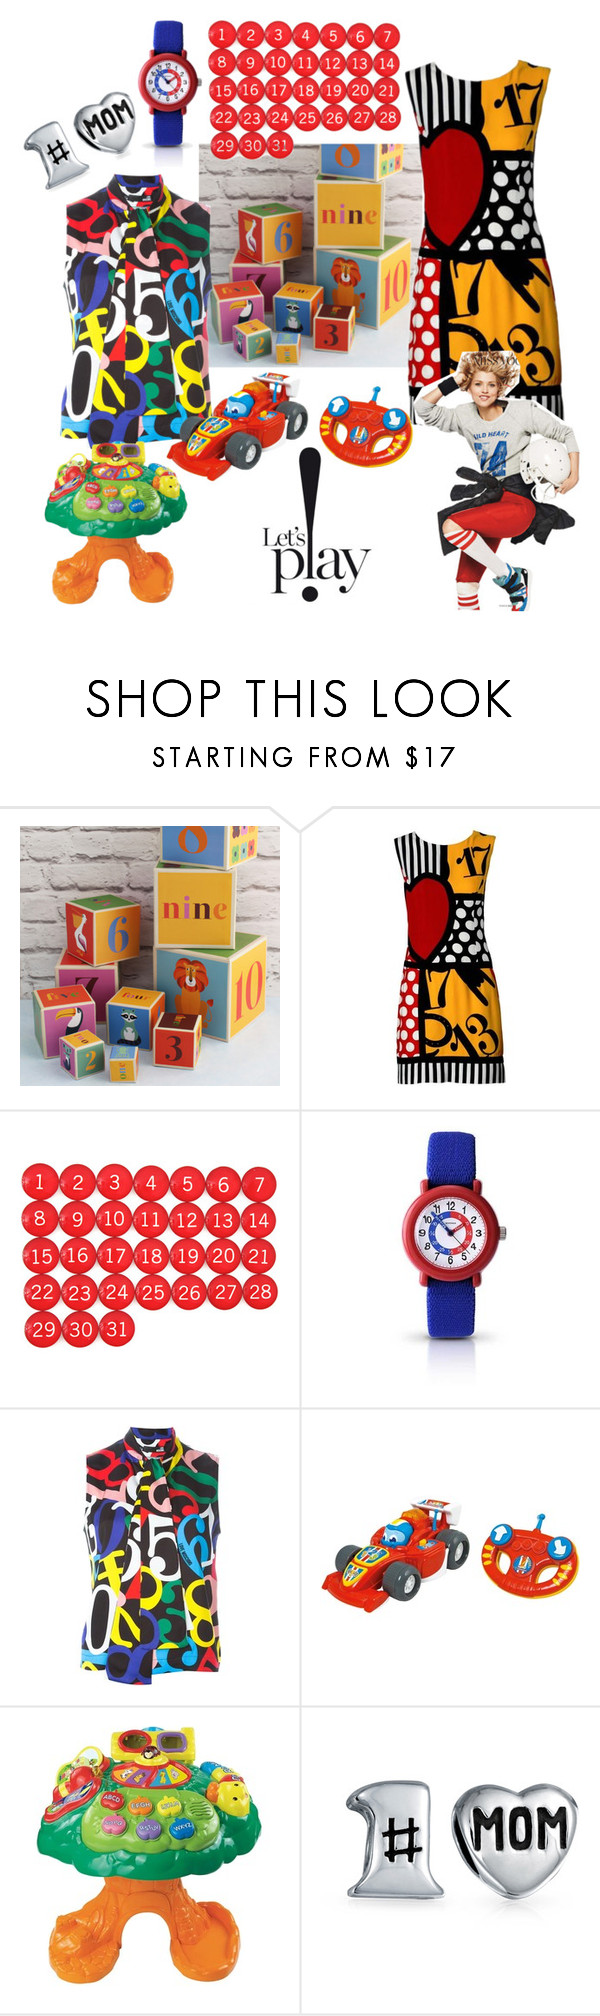 """Let's Play with Numbers!"" by alexxa-b ❤ liked on Polyvore featuring Posh Totty Designs, Moschino, Sekonda, Love Moschino, VTech, Bling Jewelry, mom, games, Mum and numbers"